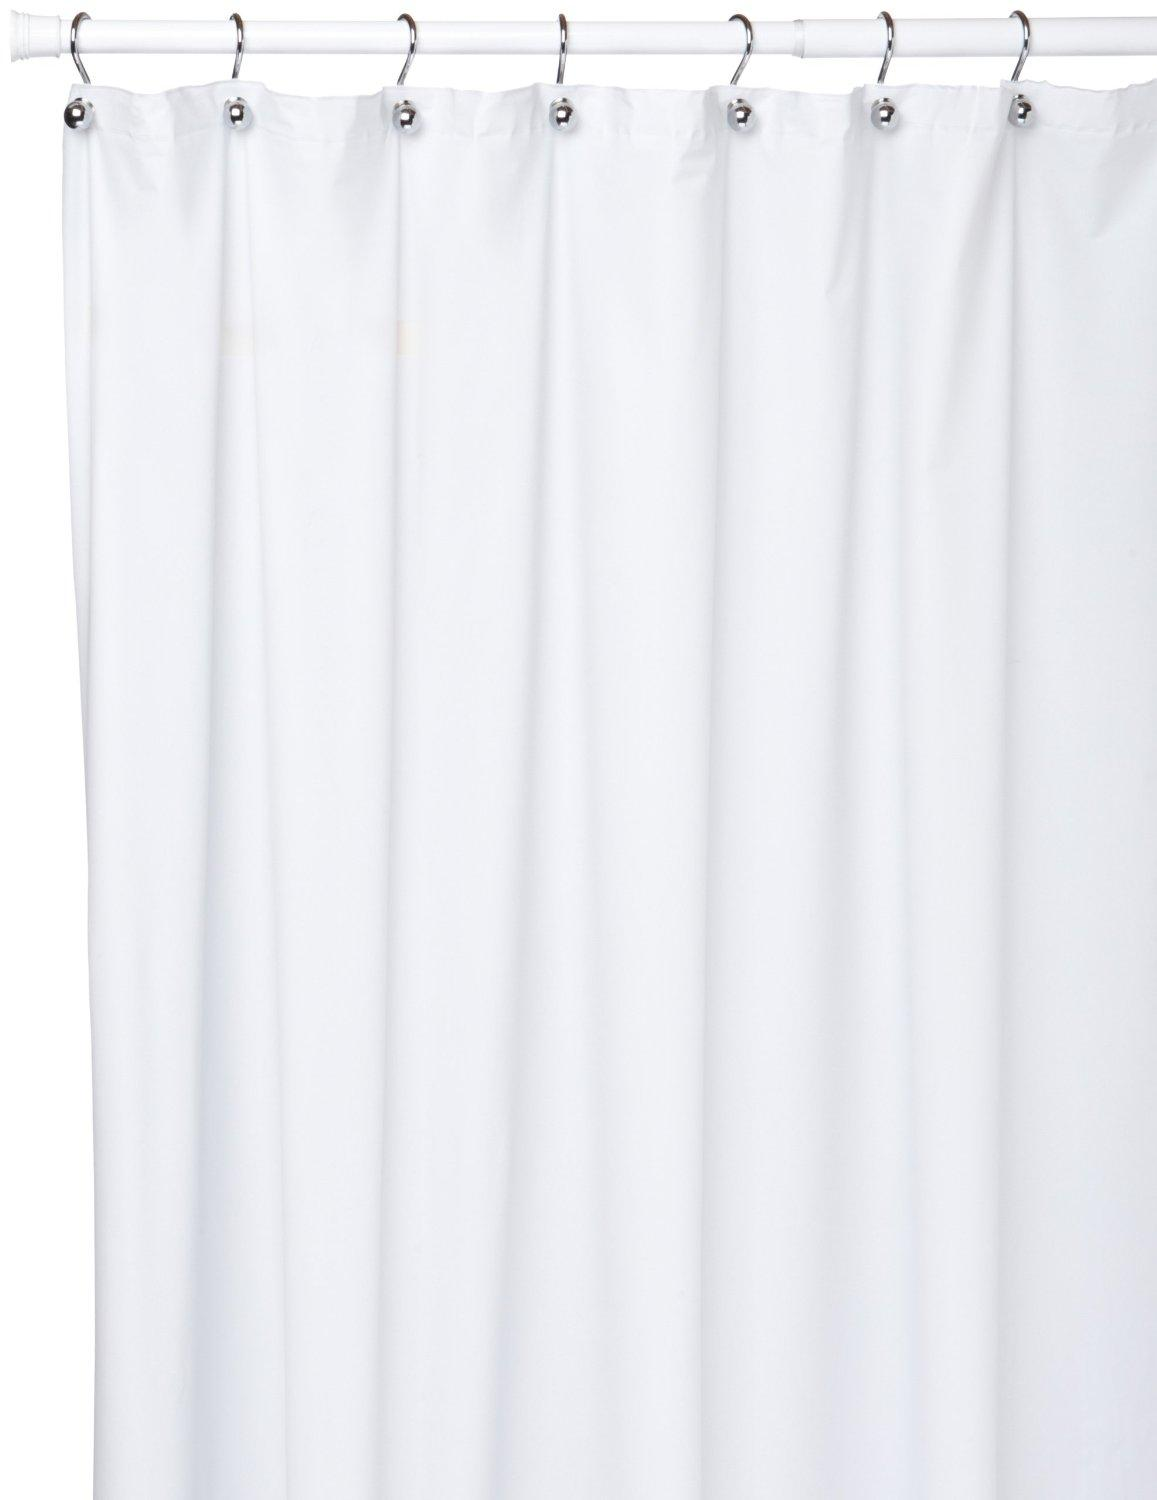 Extra Long 10 Gauge Vinyl Shower Curtain Liner White Interiordecorating